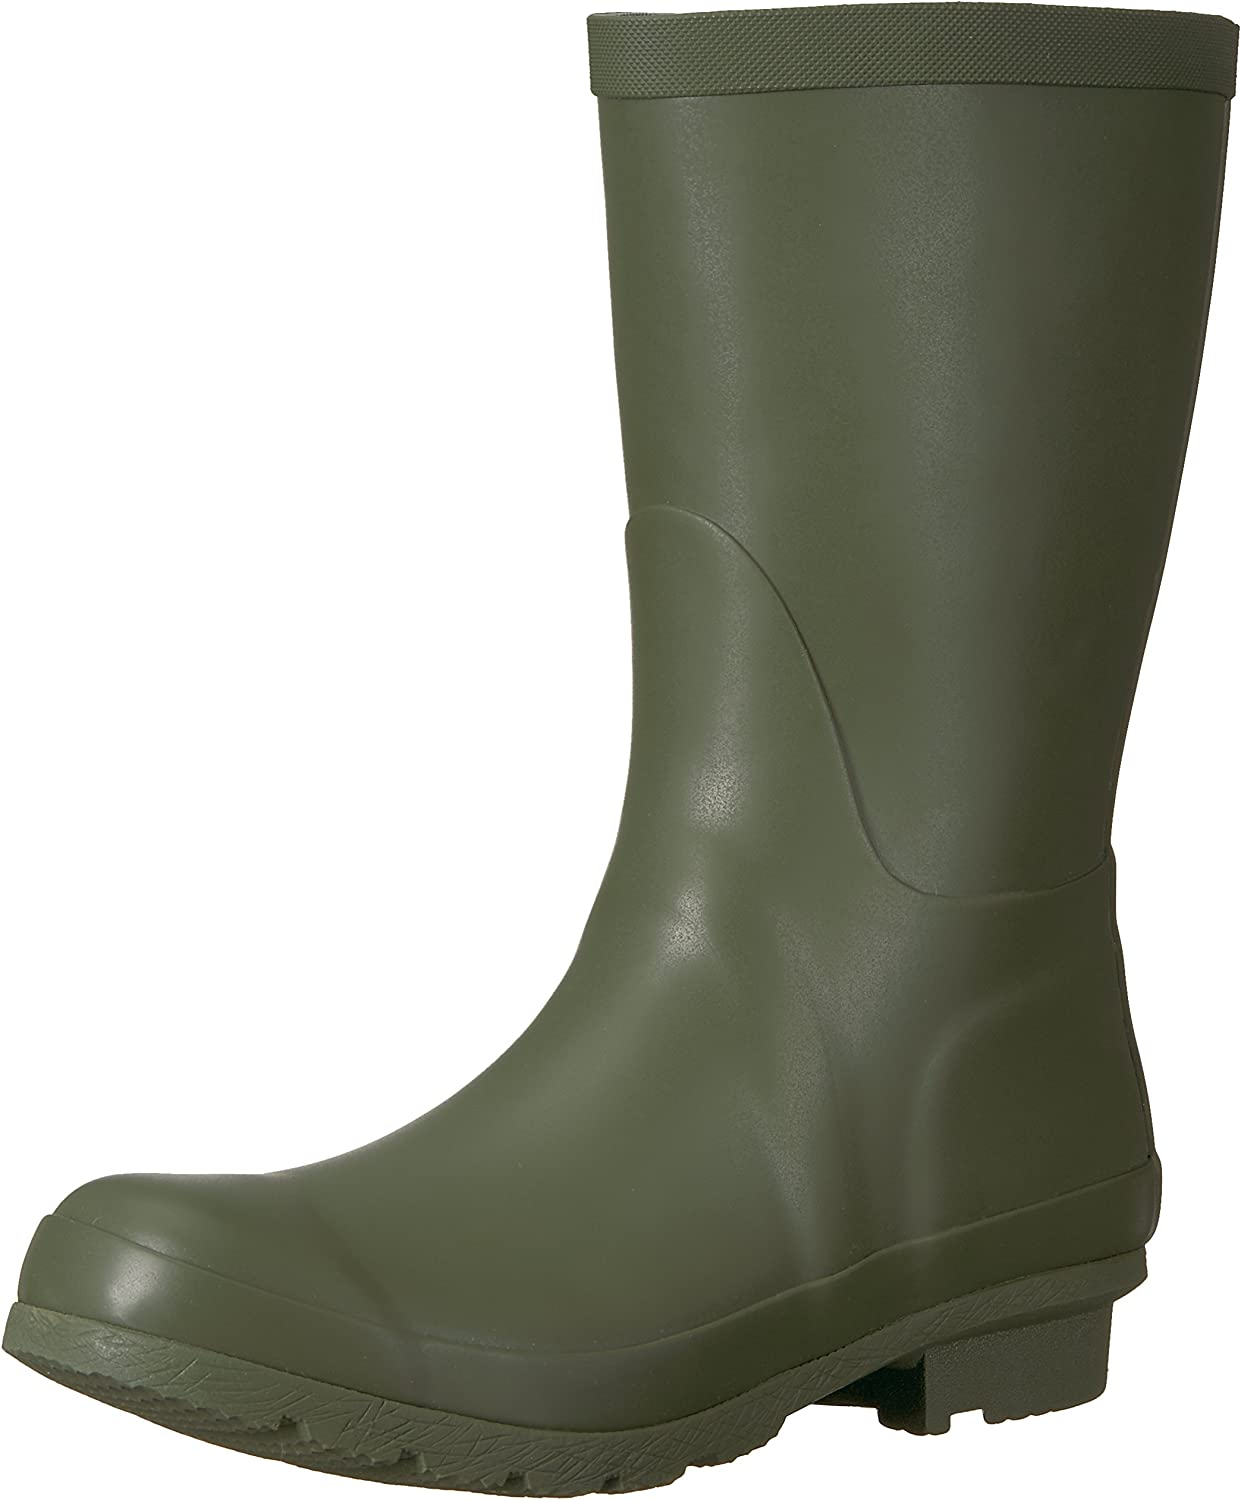 206 Collective Women's Linden Mid Rain Boot